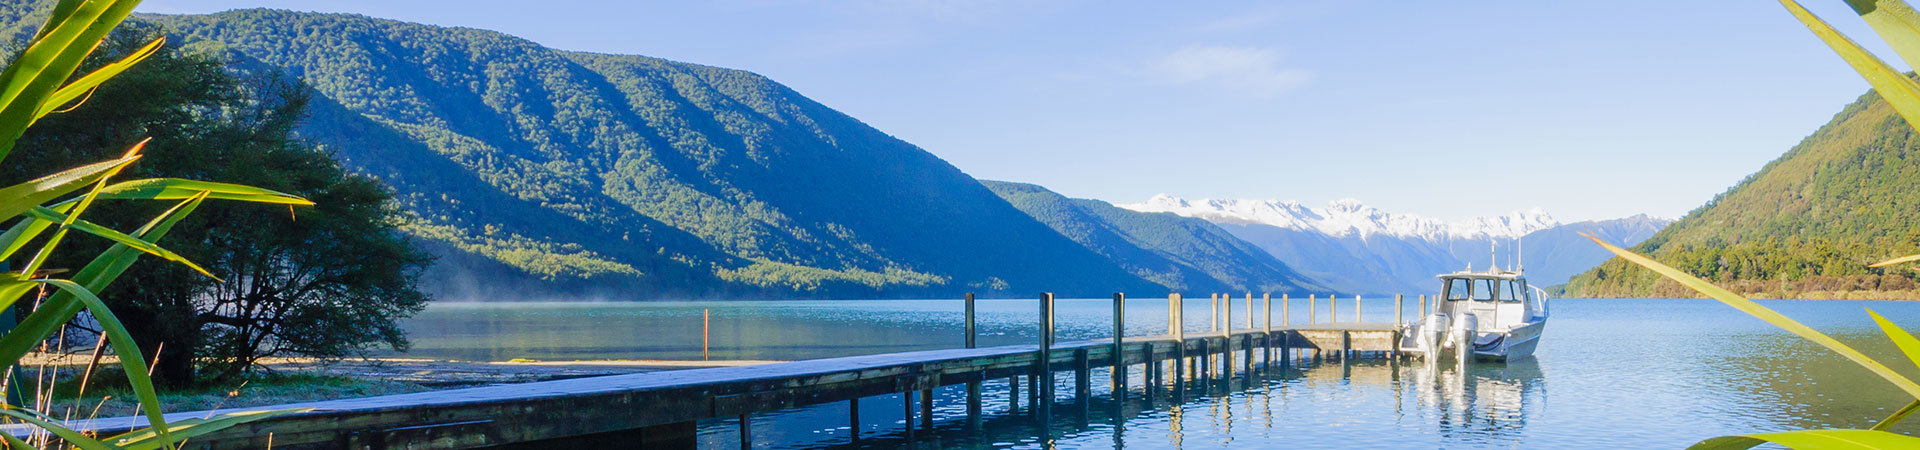 View of wharf and boat surrounded by bush clad hills in Nelson Lakes region, New Zealand